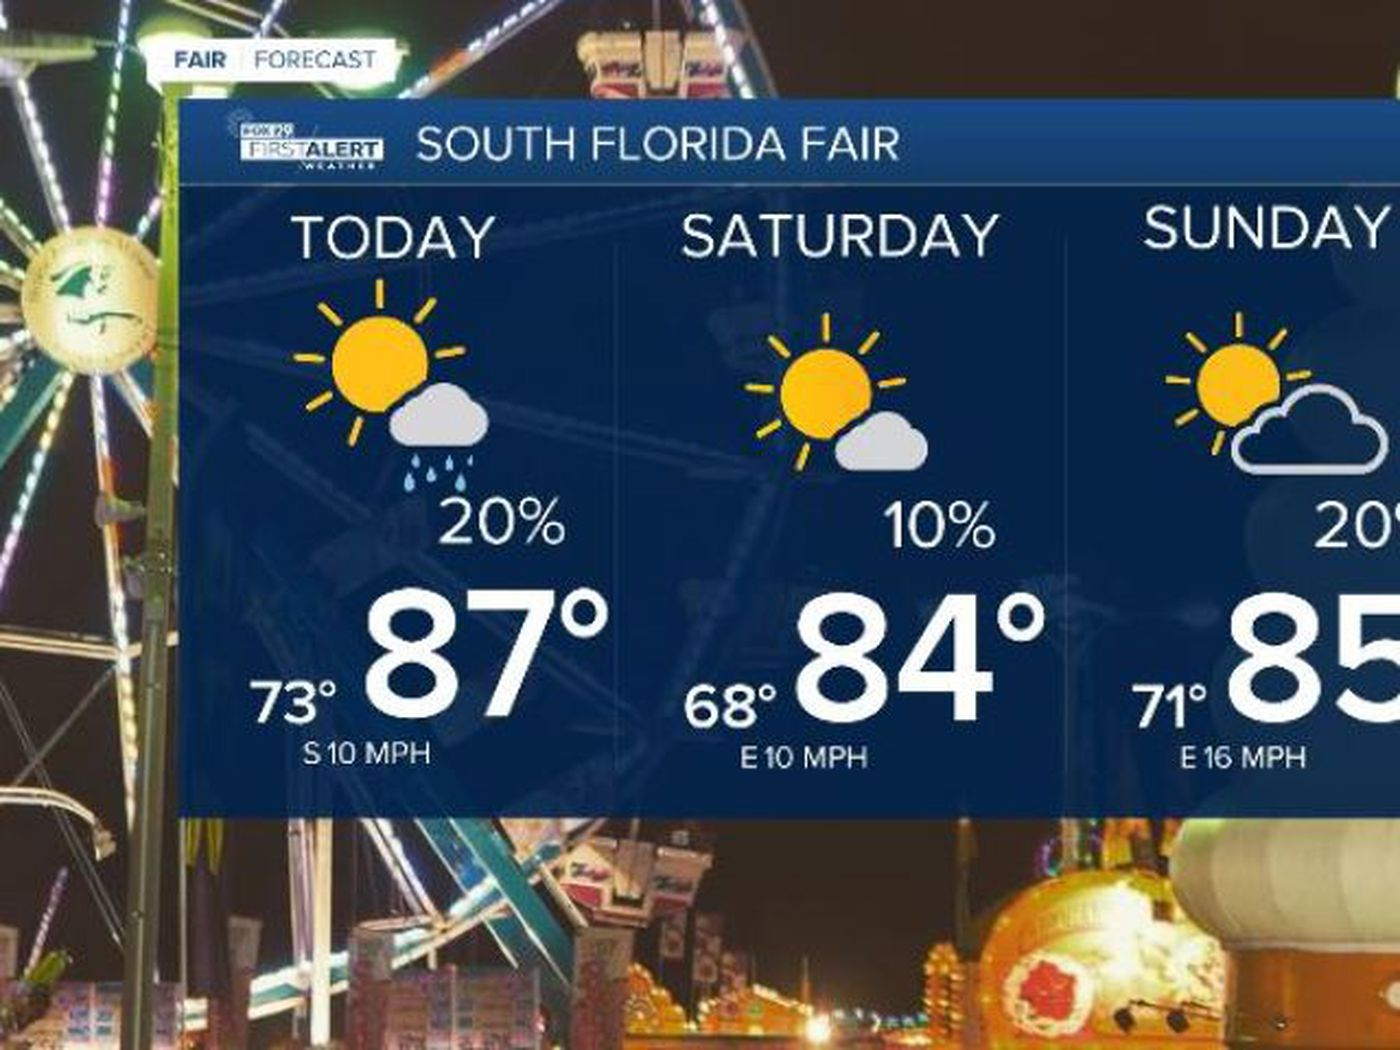 Prepare to break a sweat at South Florida Fair this weekend